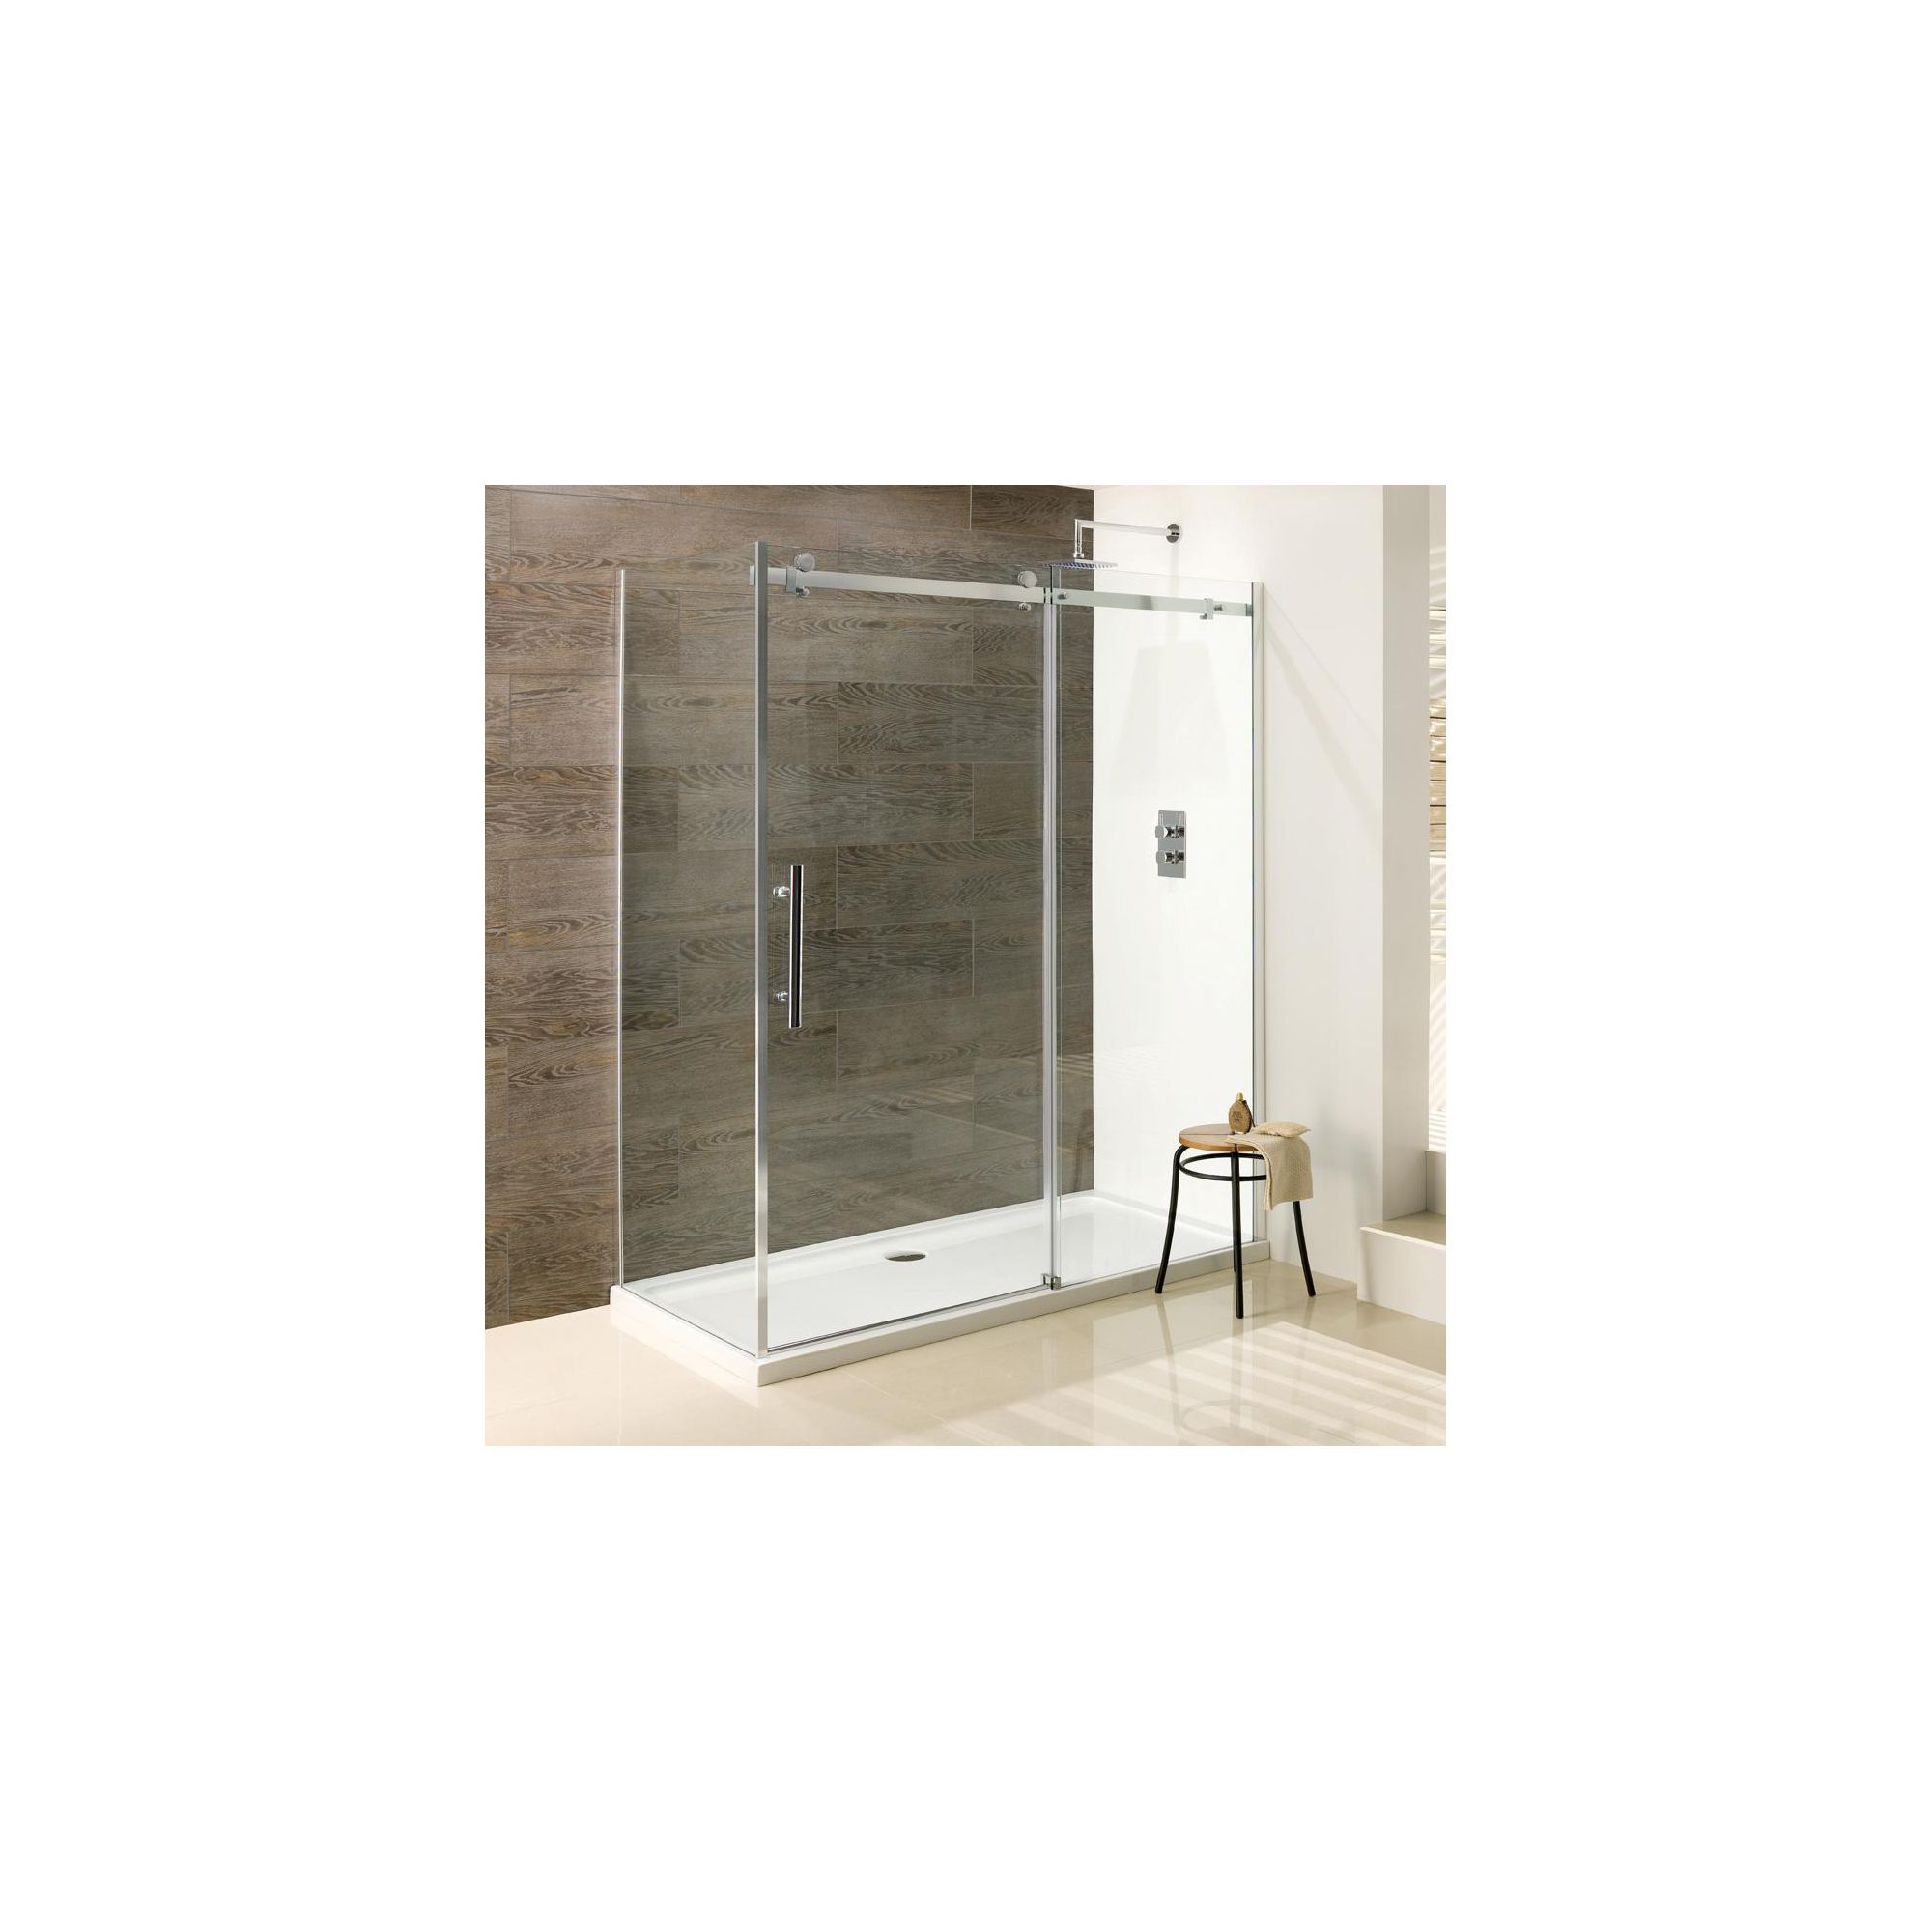 Duchy Deluxe Silver Sliding Door Shower Enclosure with Side Panel 1400mm x 800mm (Complete with Tray), 10mm Glass at Tesco Direct